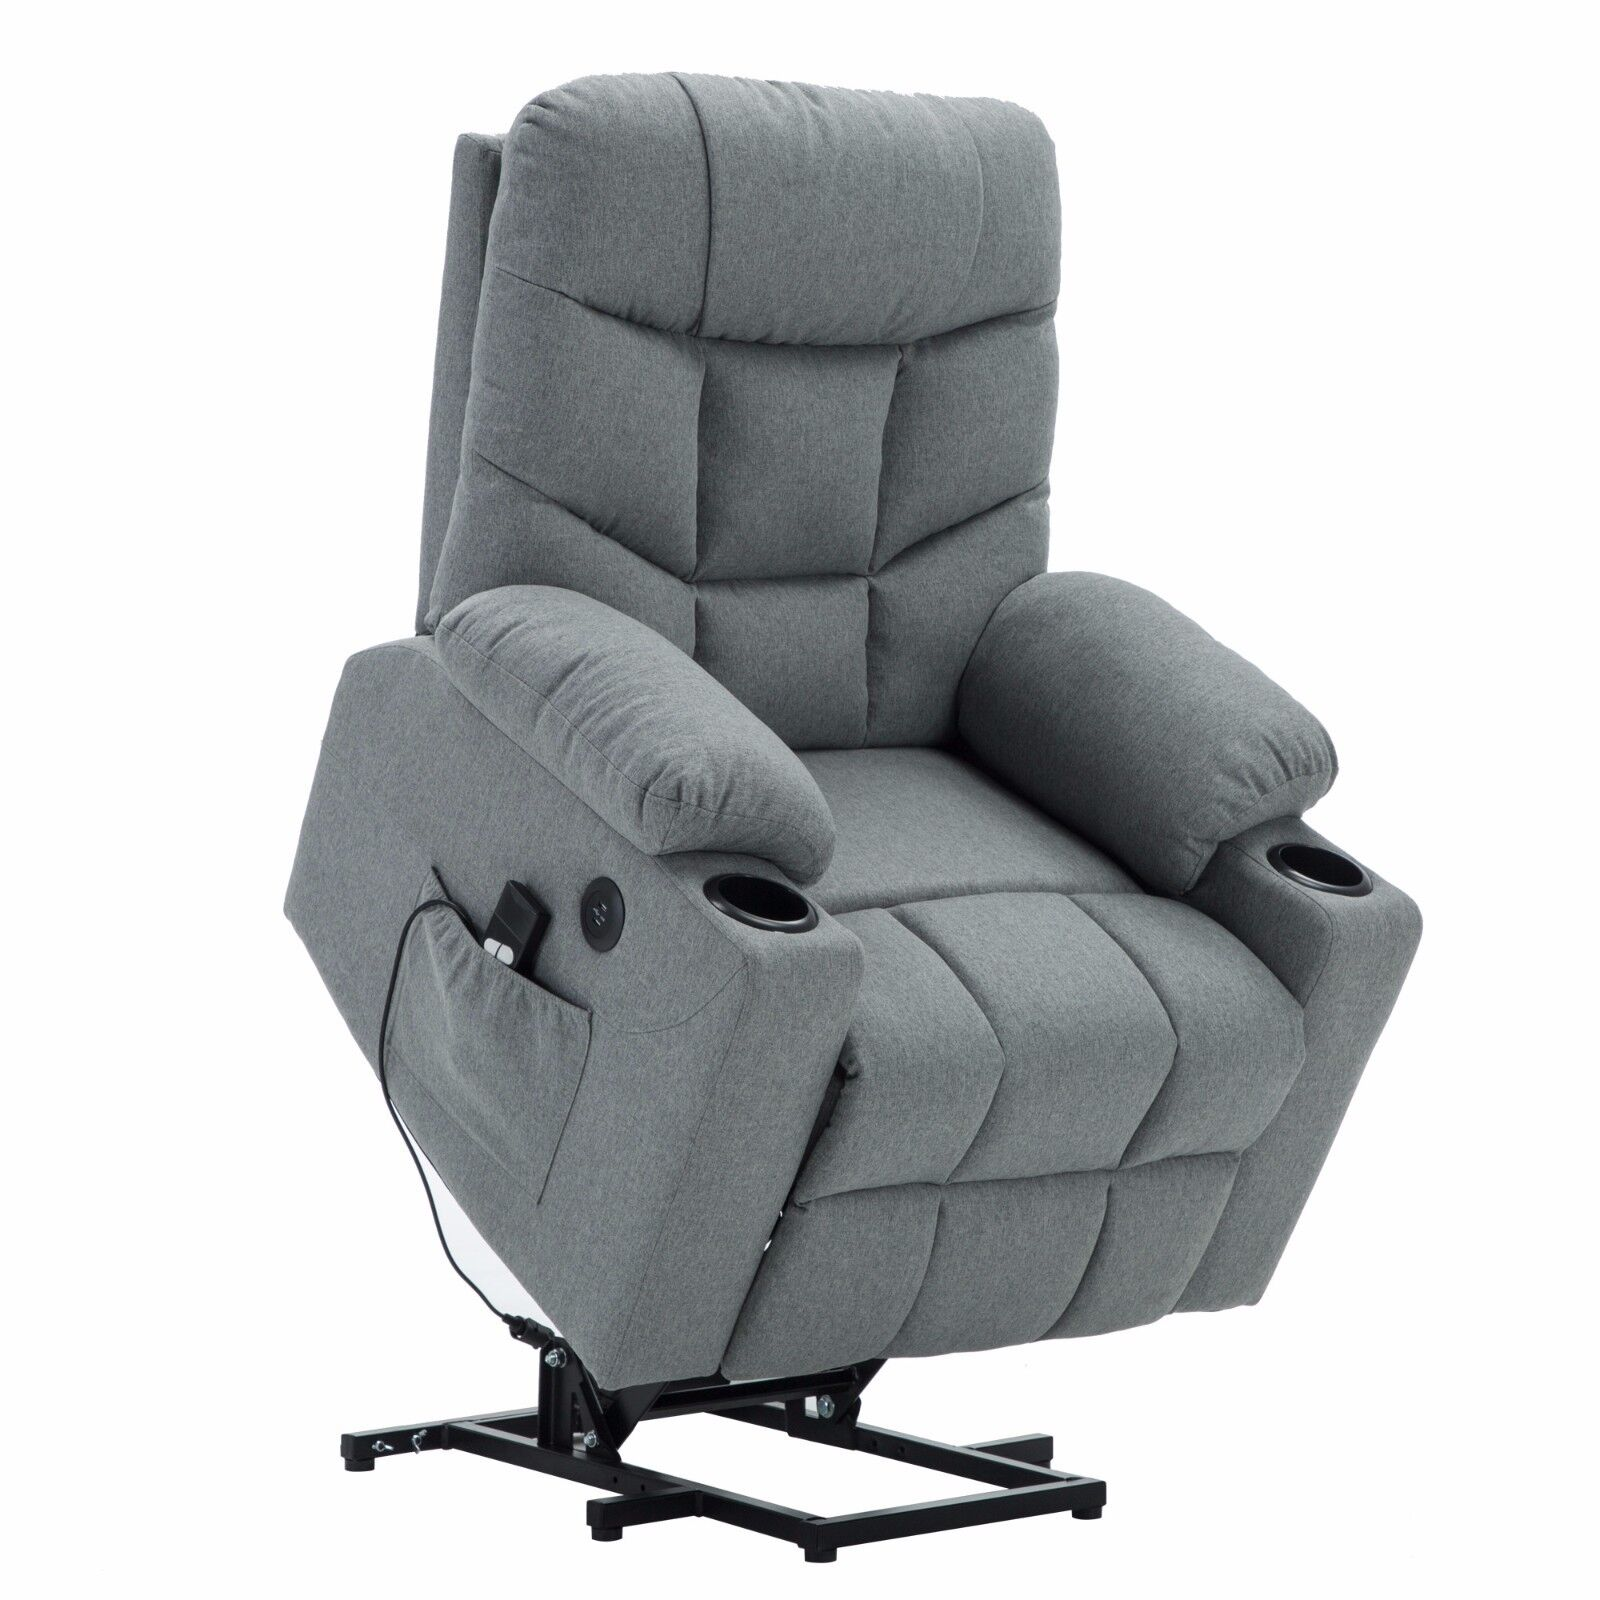 Power Lift Recliner Chair TUV Motor Lounge w/Remote USB Char